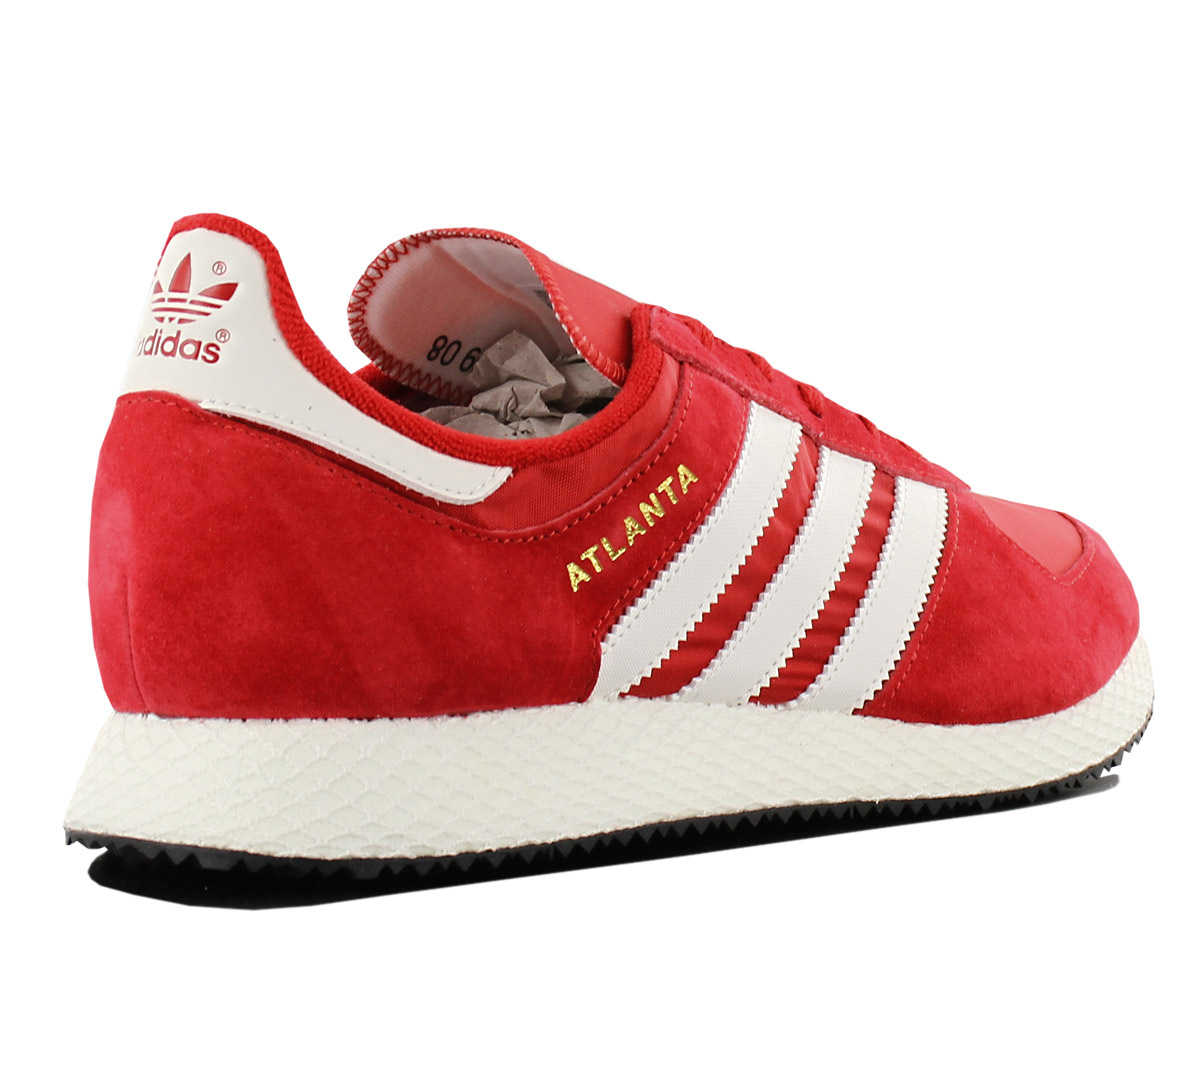 look good shoes sale good texture picked up Details about NEW adidas Originals Atlanta Spezial BY1880 Men''s Shoes  Trainers Sneakers SALE